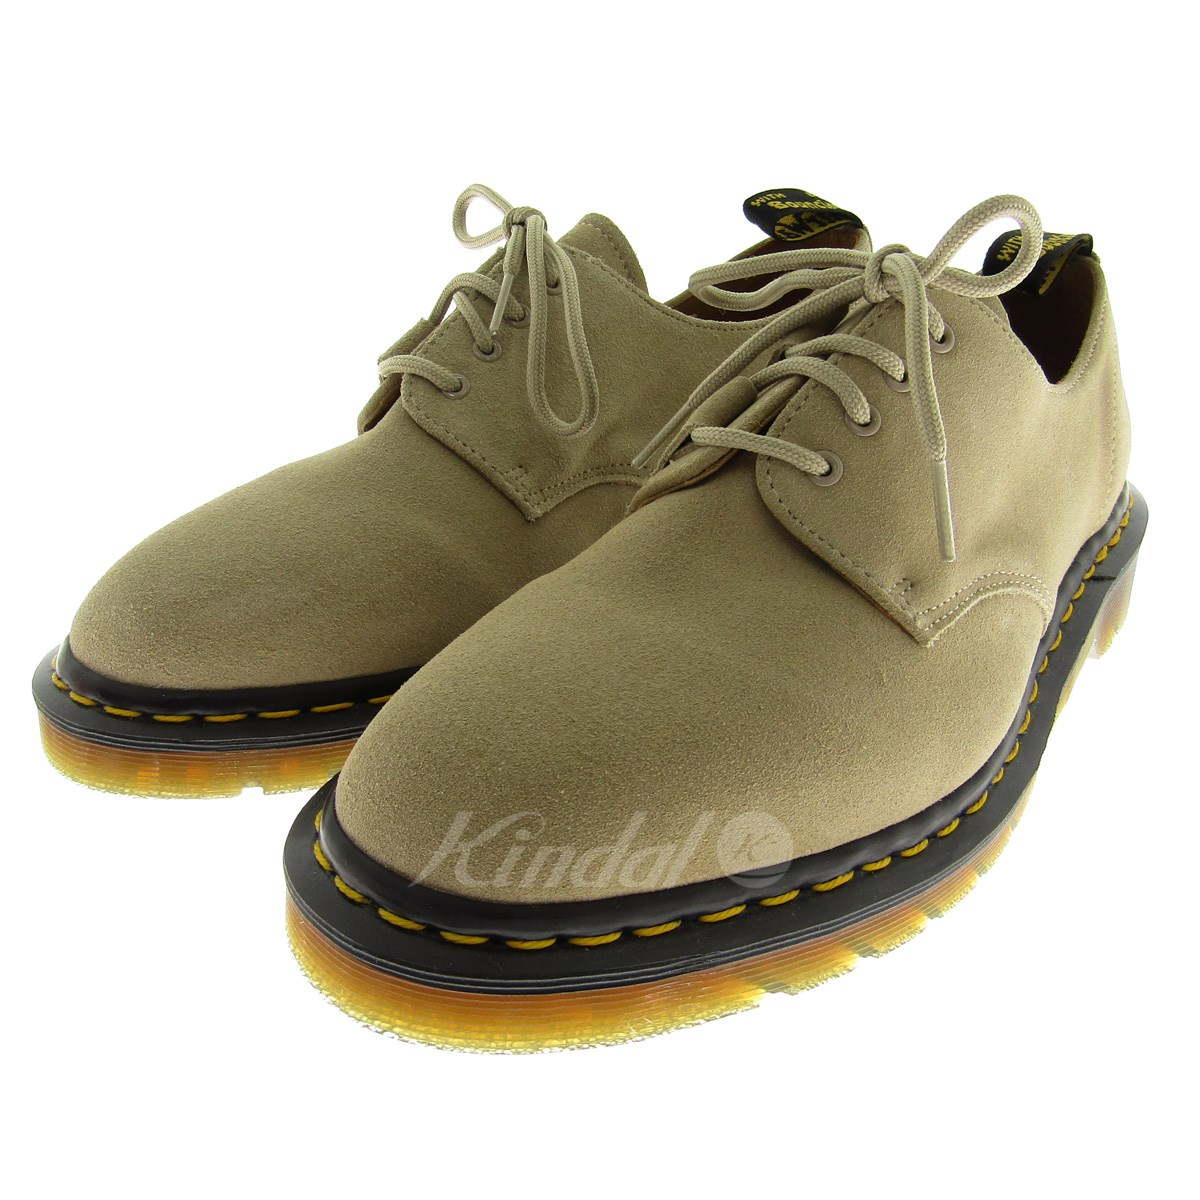 【中古】Dr.Martens for Engineered Garments ARCHIVE EG ギリーシューズ 【送料無料】 【005564】 【KIND1550】